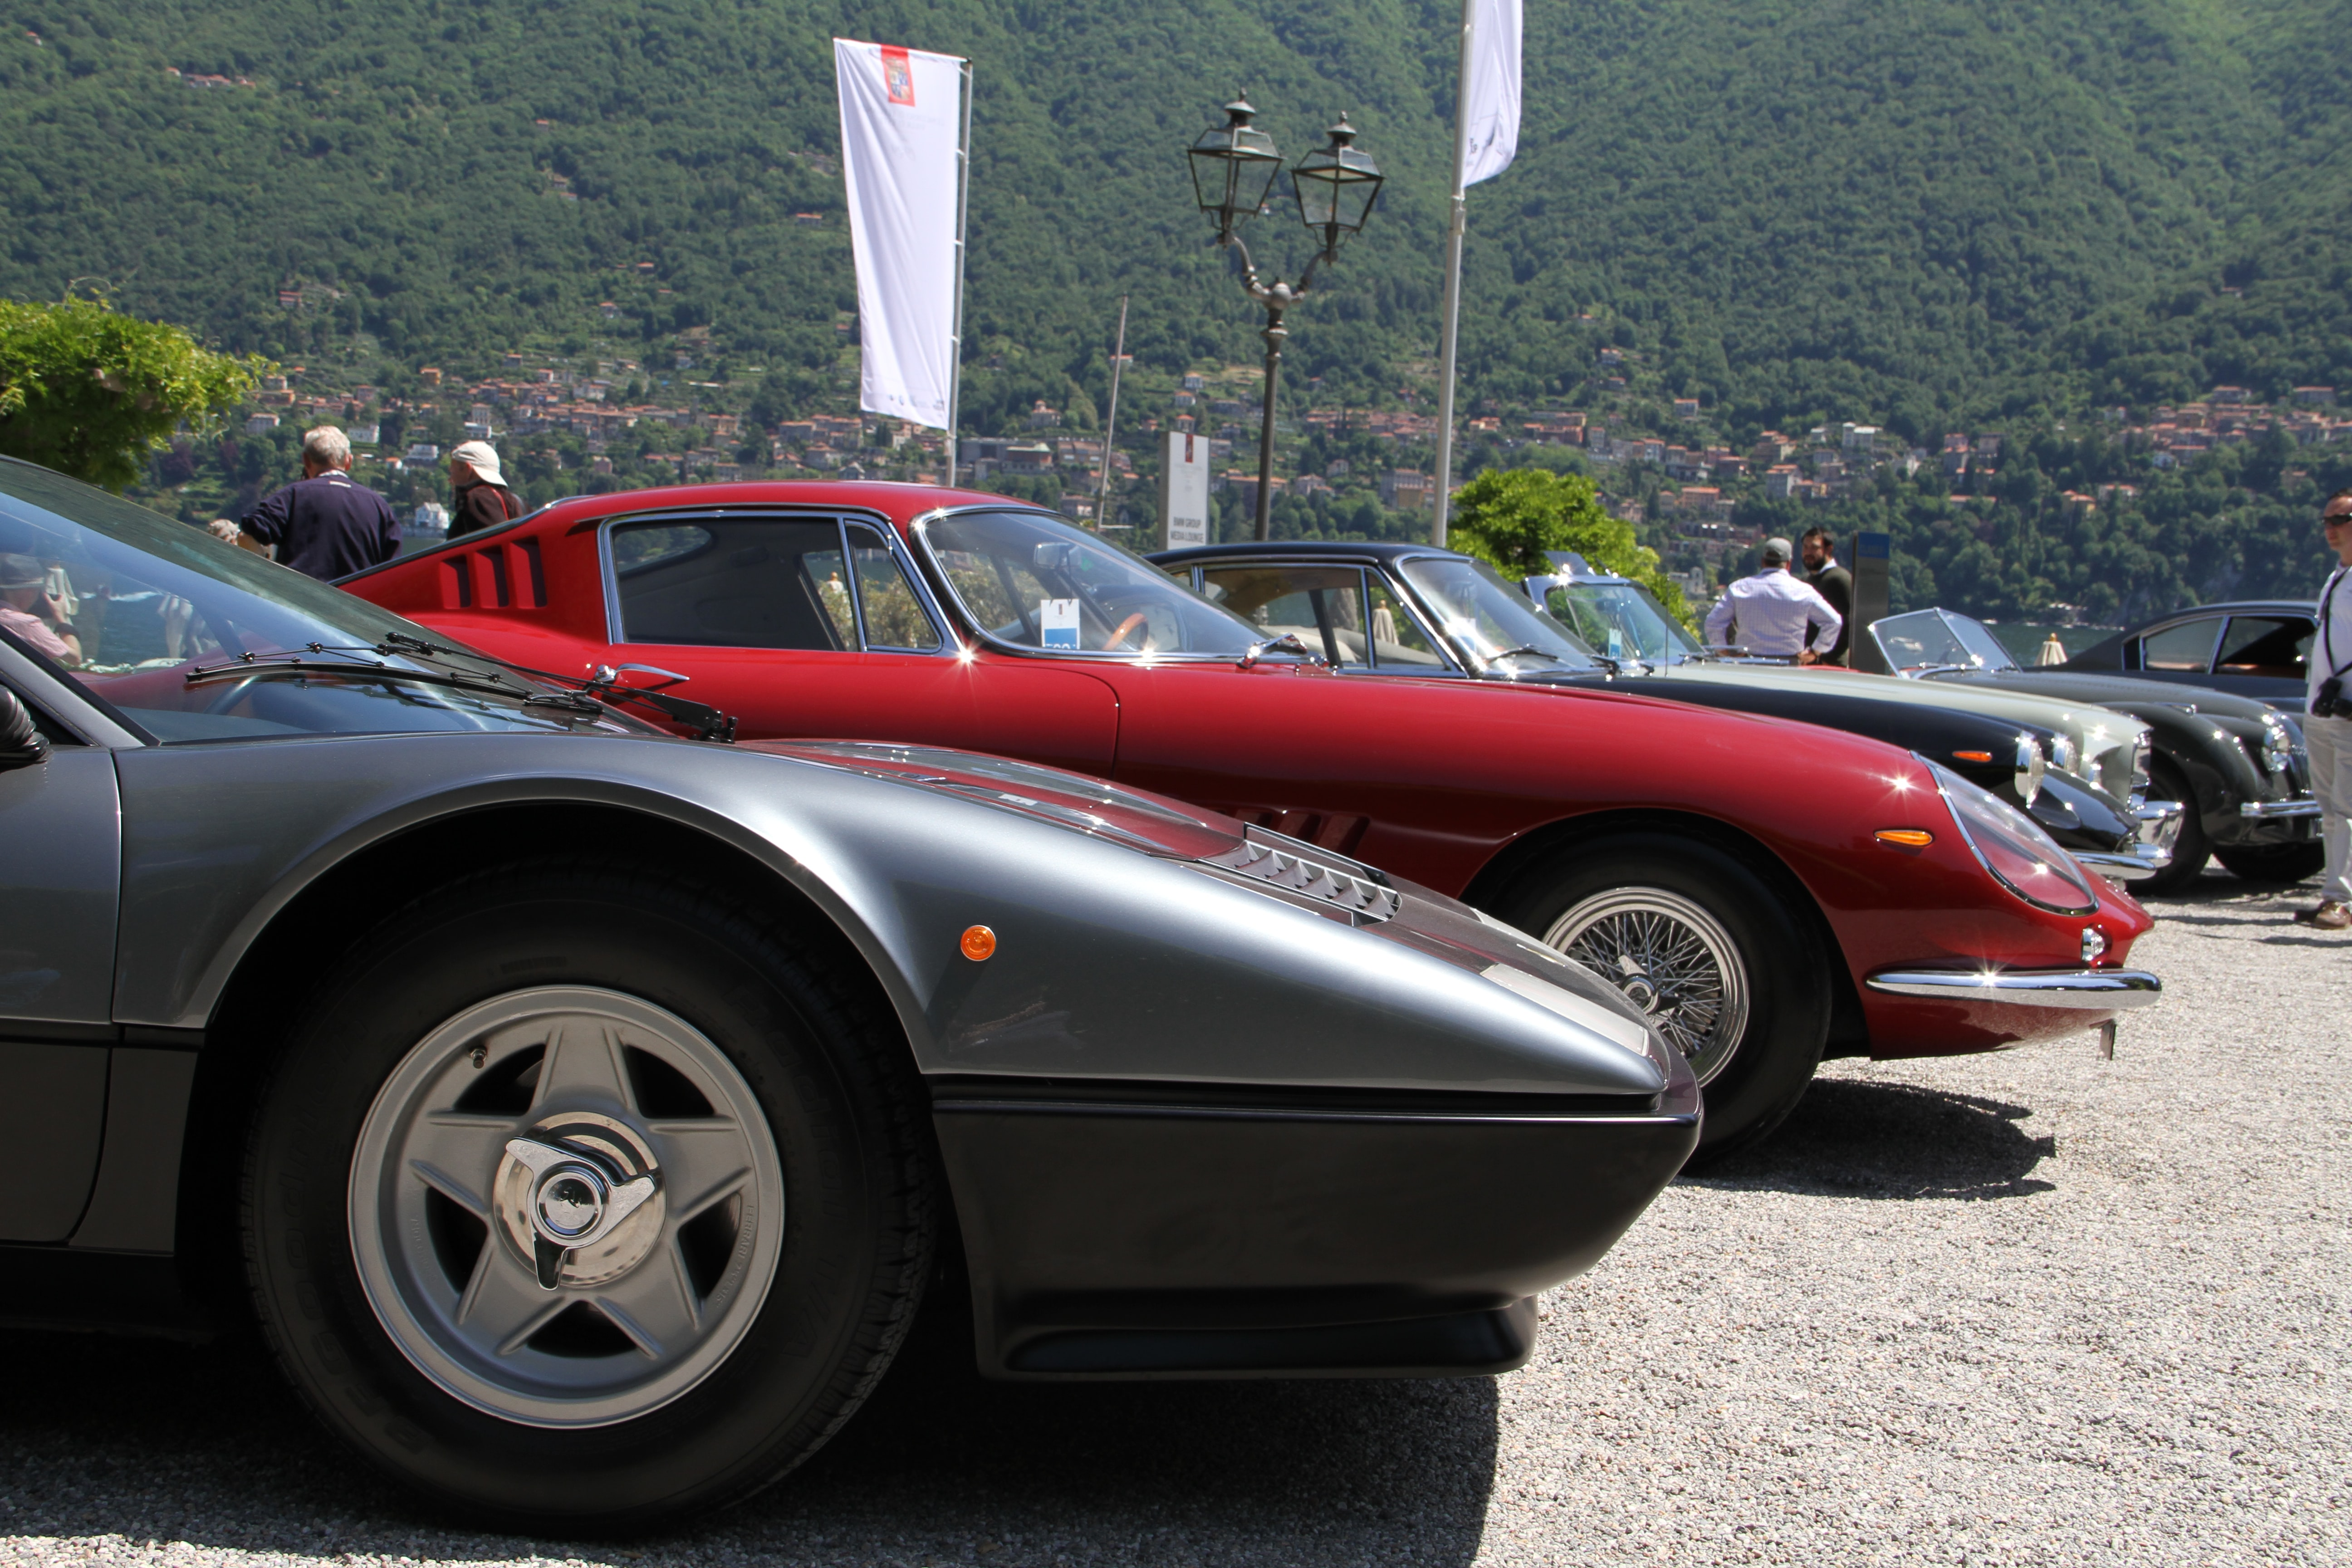 Ferrari 365 GBT/4 Berlinetta Boxer with Targa roof, formerly owned by Clint Eastwood, in front of a Ferrari 275 GTB/4 formely owned by Steve McQueen.  Photo Report: Watch And Car Spotting At The 2016 Concorso d'Eleganza Villa d'Este With A. Lange & Söhne Photo Report: Watch And Car Spotting At The 2016 Concorso d'Eleganza Villa d'Este With A. Lange & Söhne IMG 5314